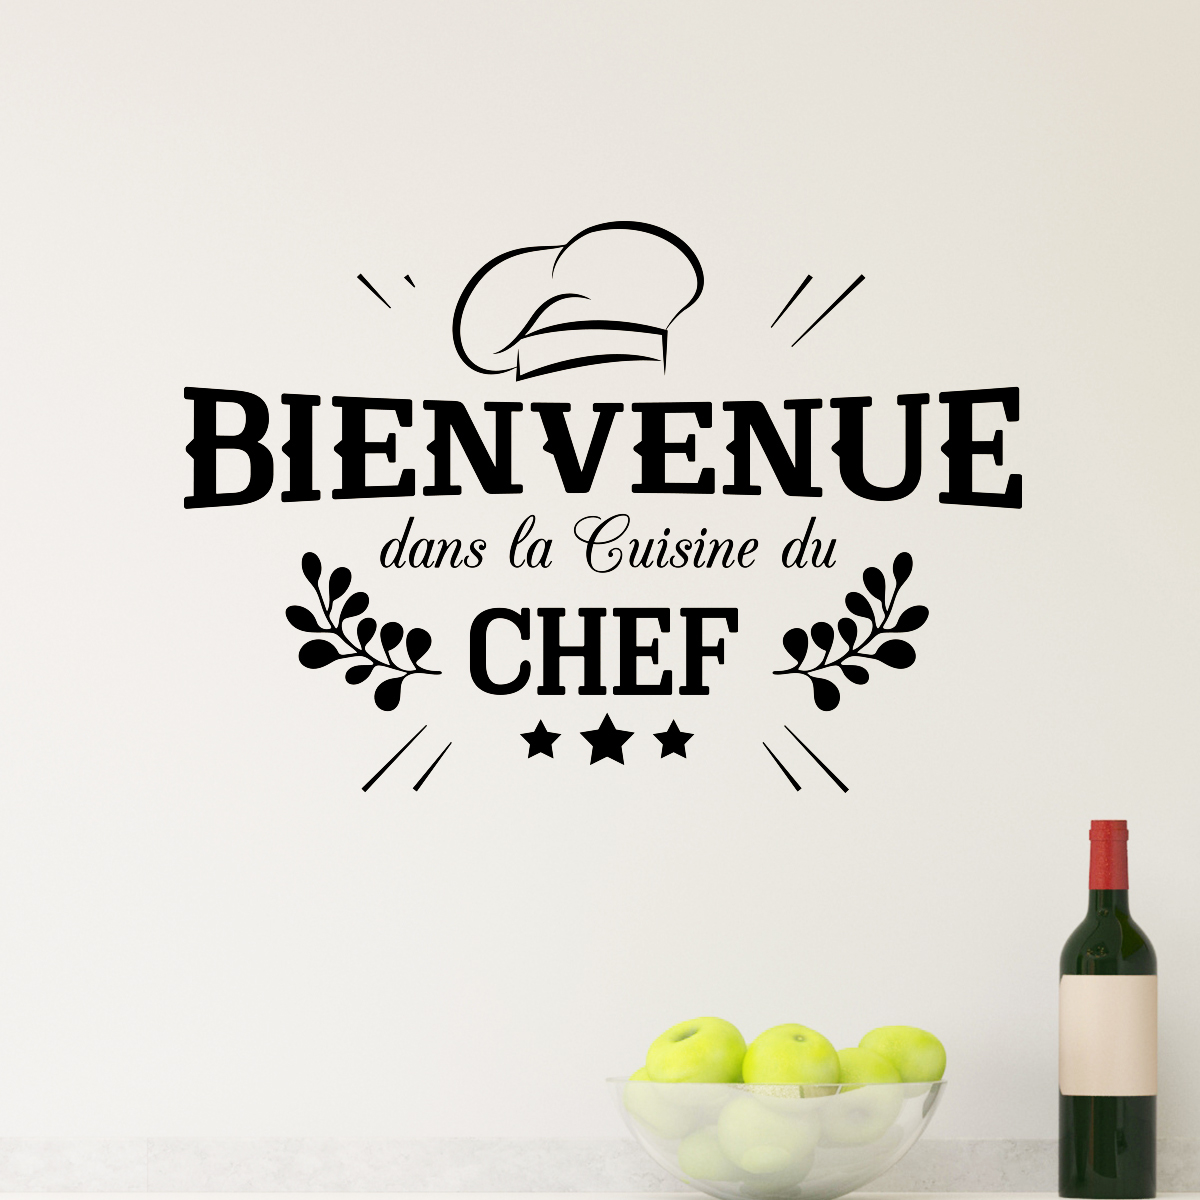 Sticker bienvenue cuisine du chef stickers cuisine for Proverbe cuisine humour